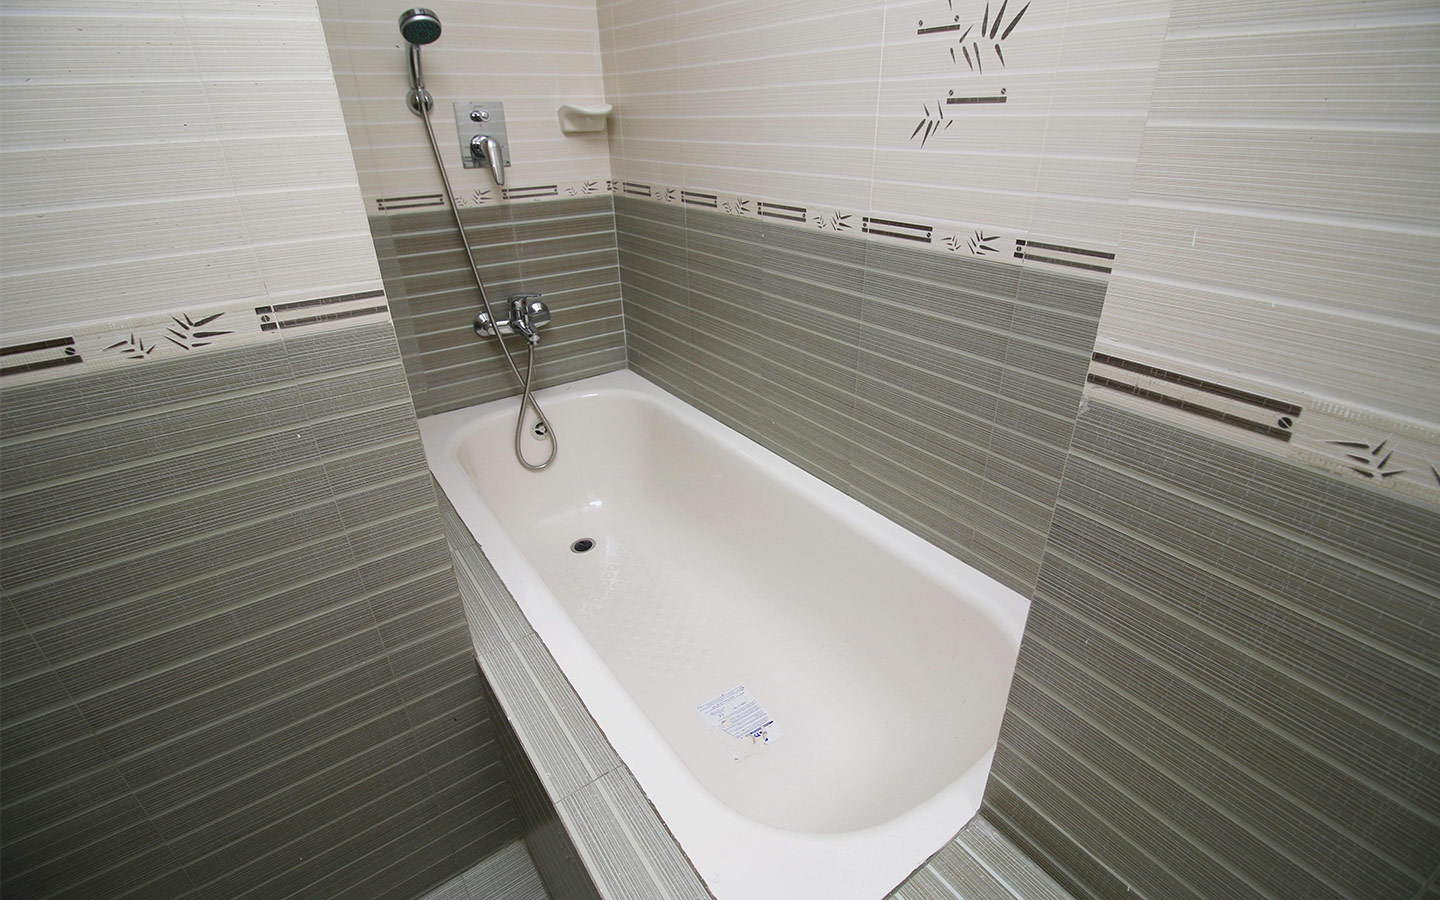 Picture of a bathtub in a congested spacing